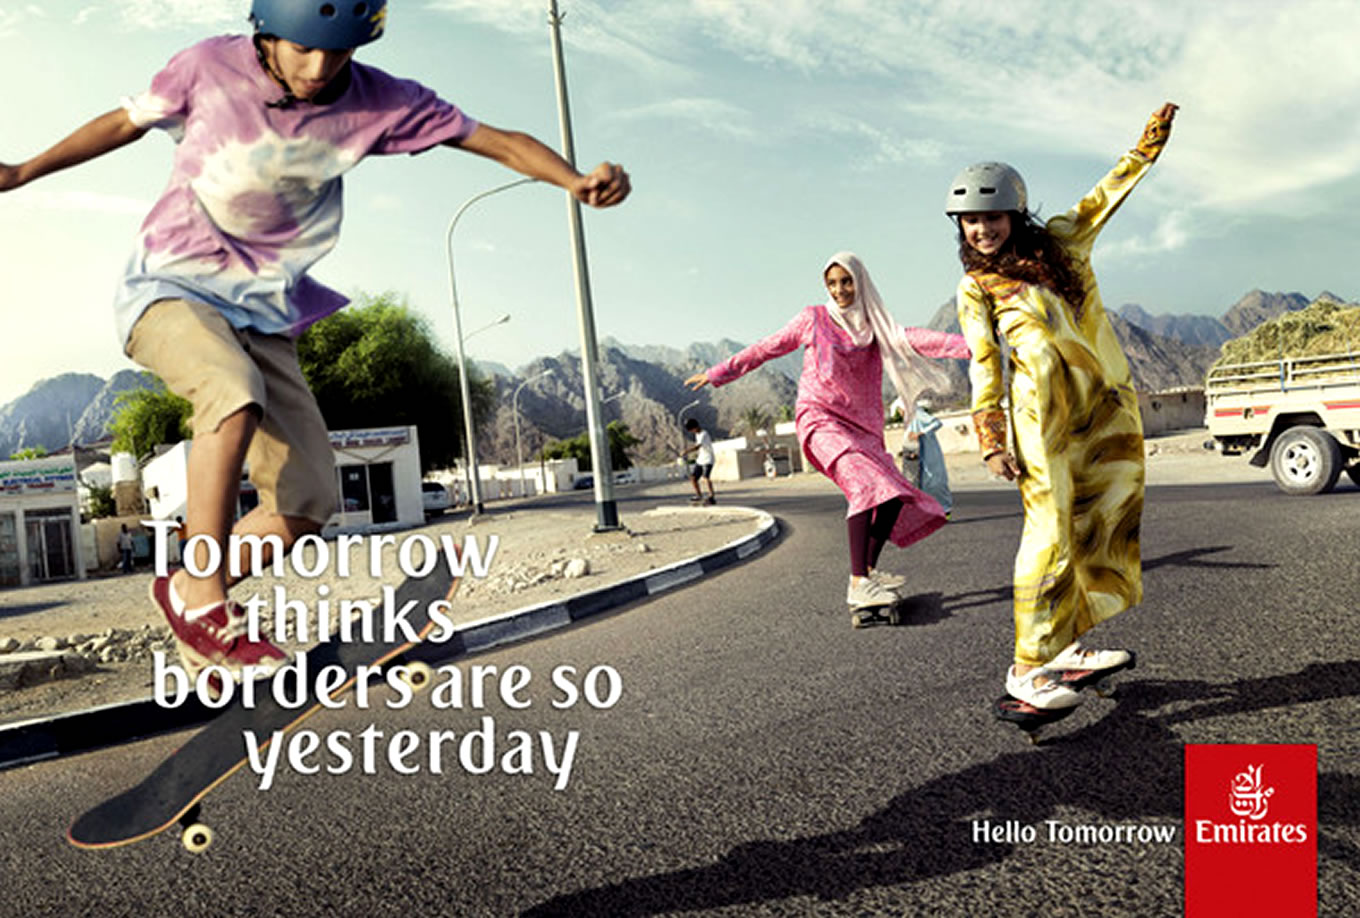 Borders Are So Yesterday, Hello Tomorrow Marketing Campaign by Emirates Airlines